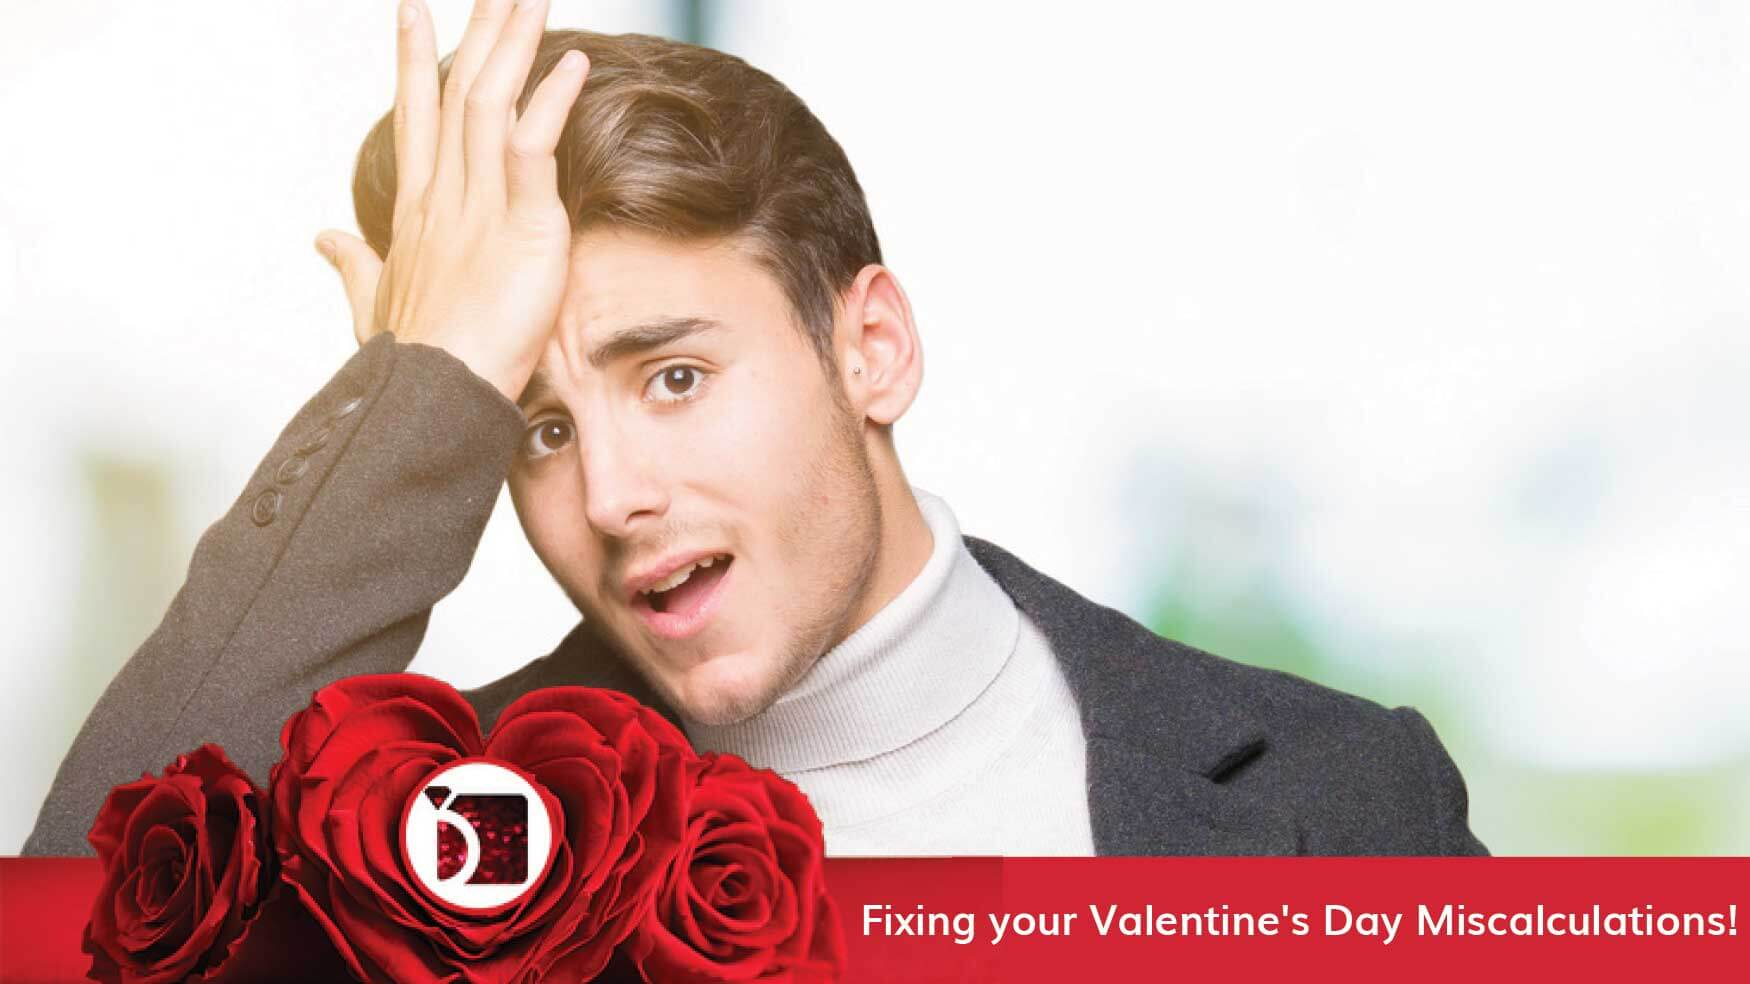 Fixing Your Valentine's Day Miscalculations!